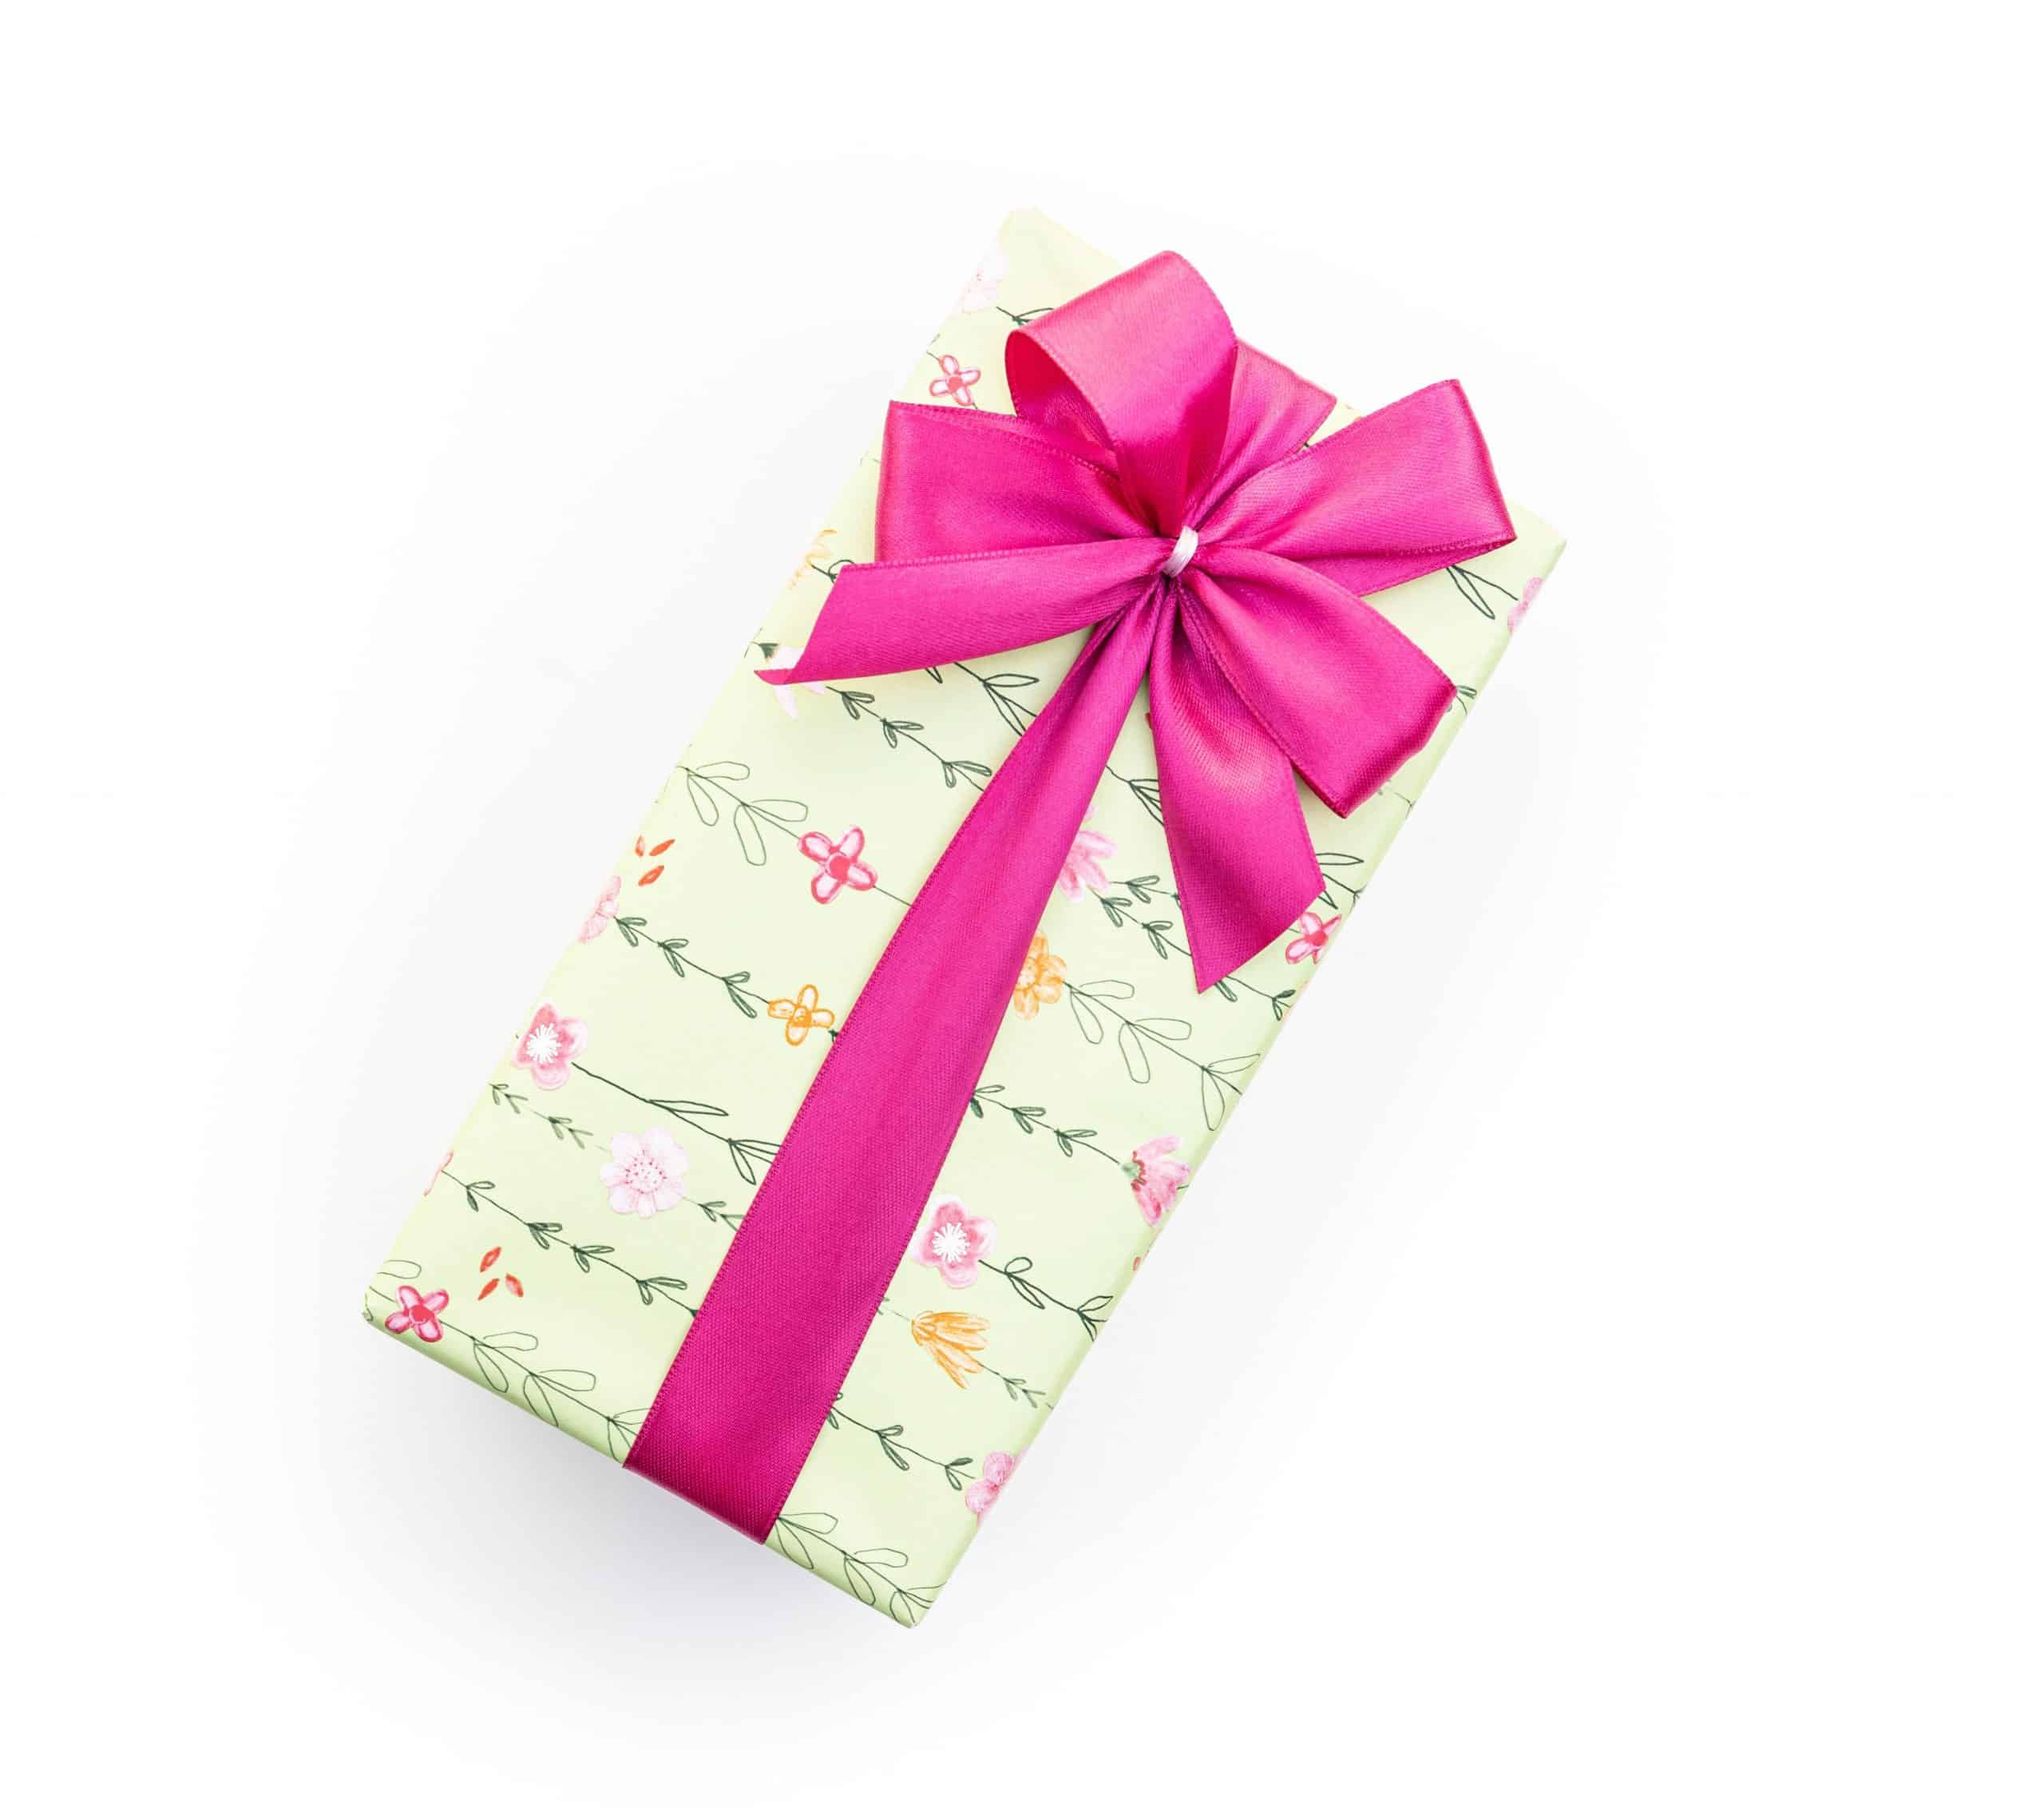 Gift box with a pink ribbon